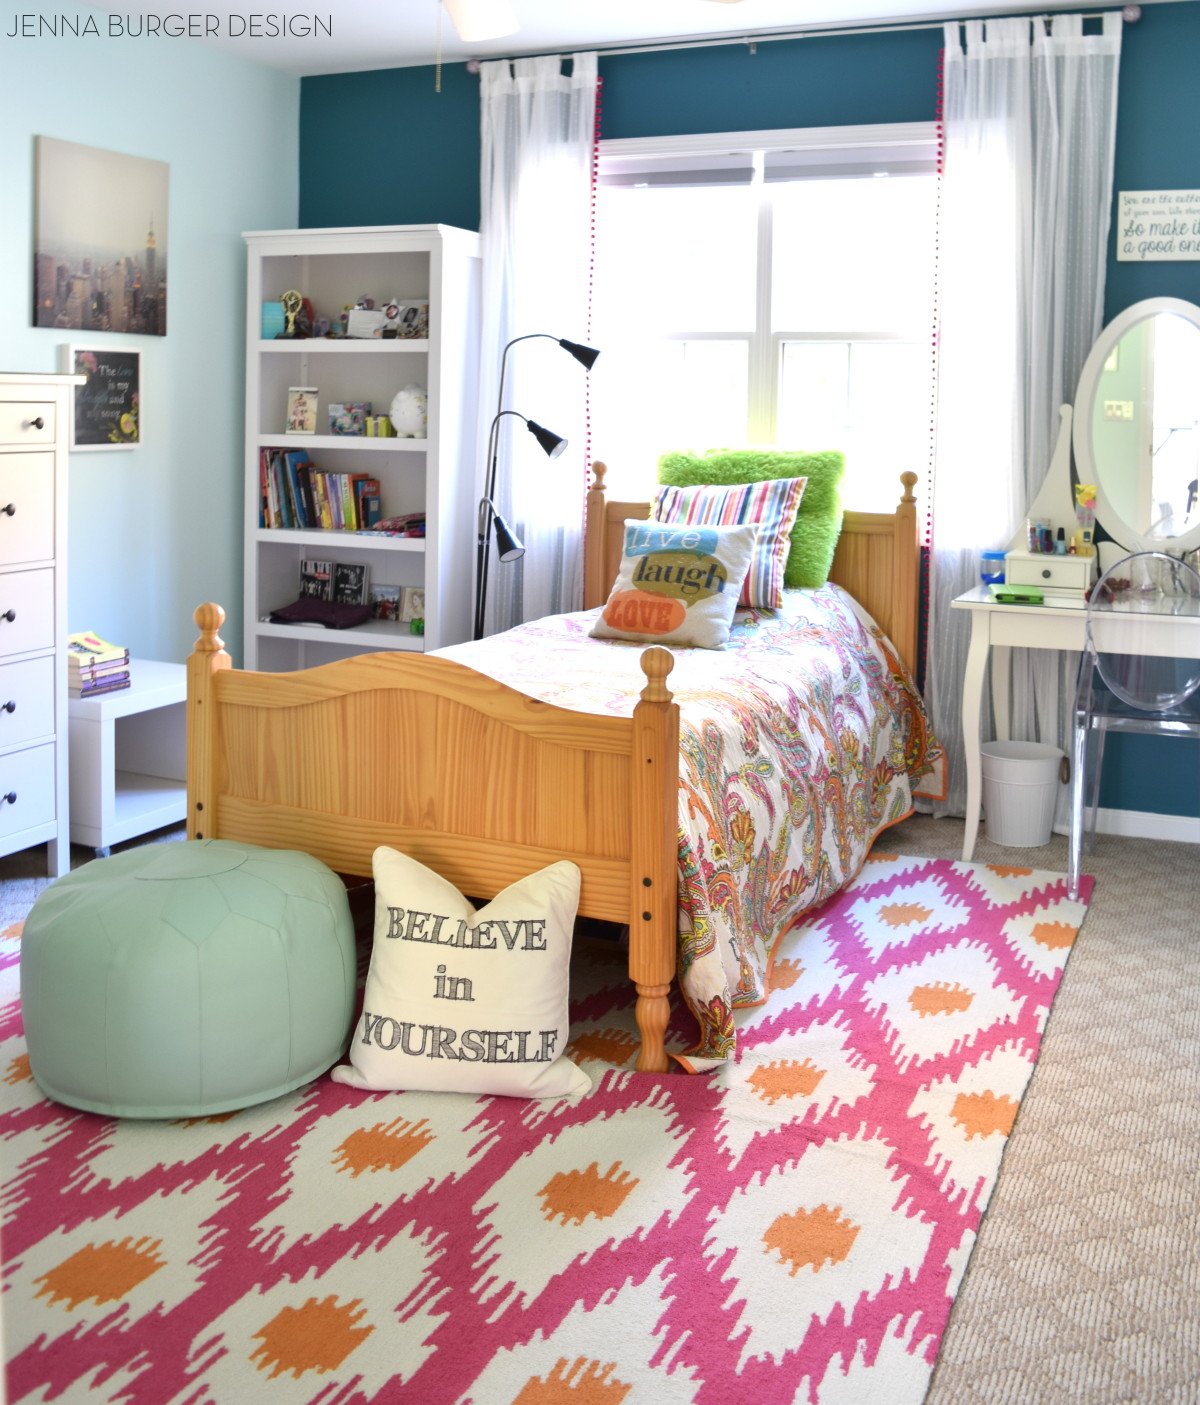 Teen Room Makeover With Colors Of Mint, Turquoise, And Fuchsia + Layers Of  Texture